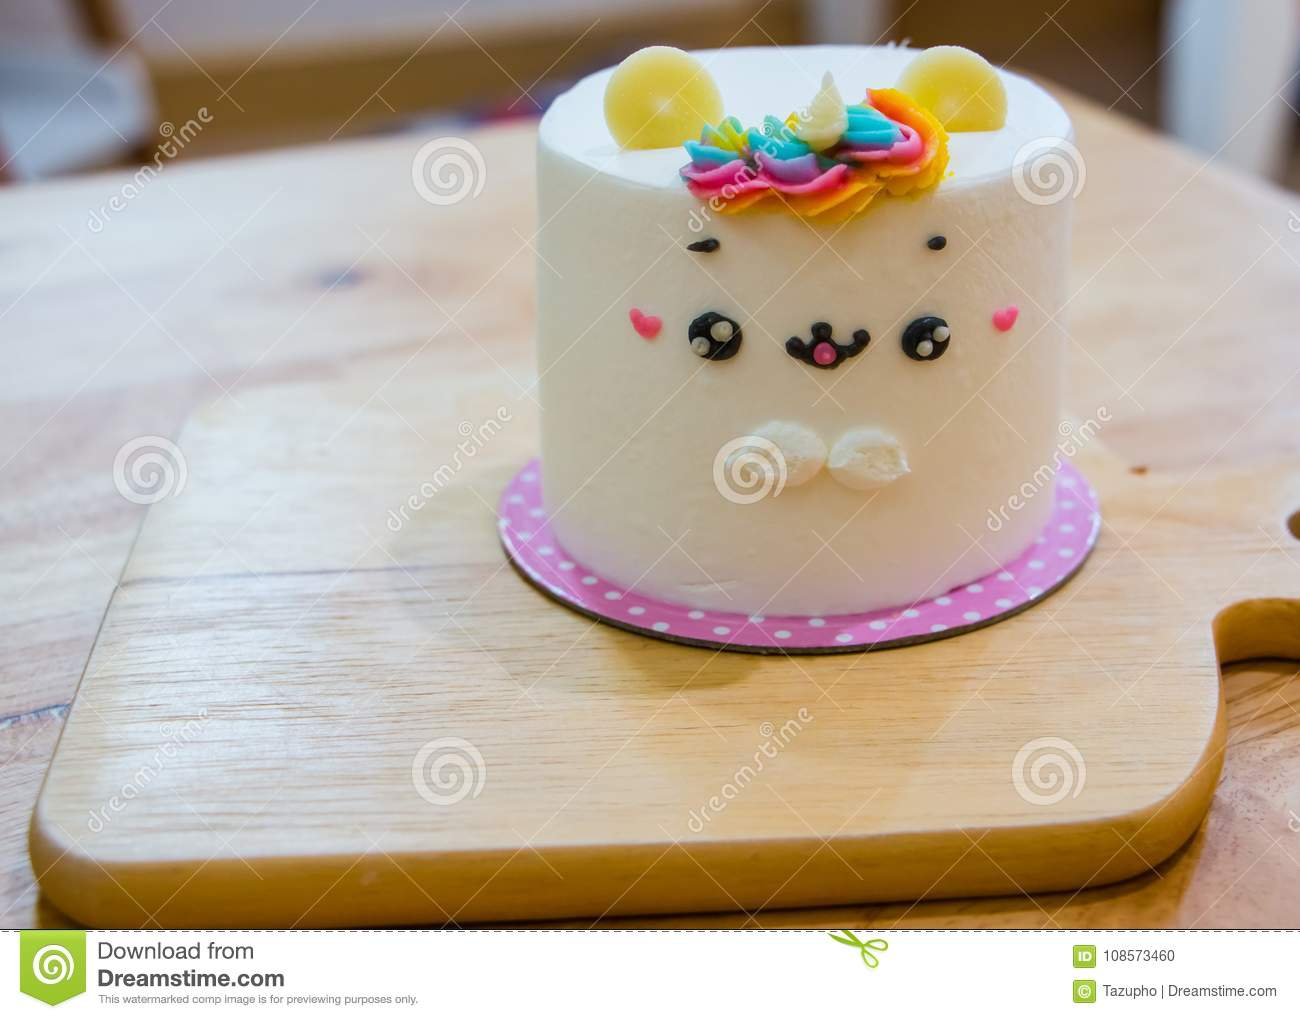 Admirable Cake In The Shape Of A Unicorn On Wooden Table Stock Photo Funny Birthday Cards Online Elaedamsfinfo